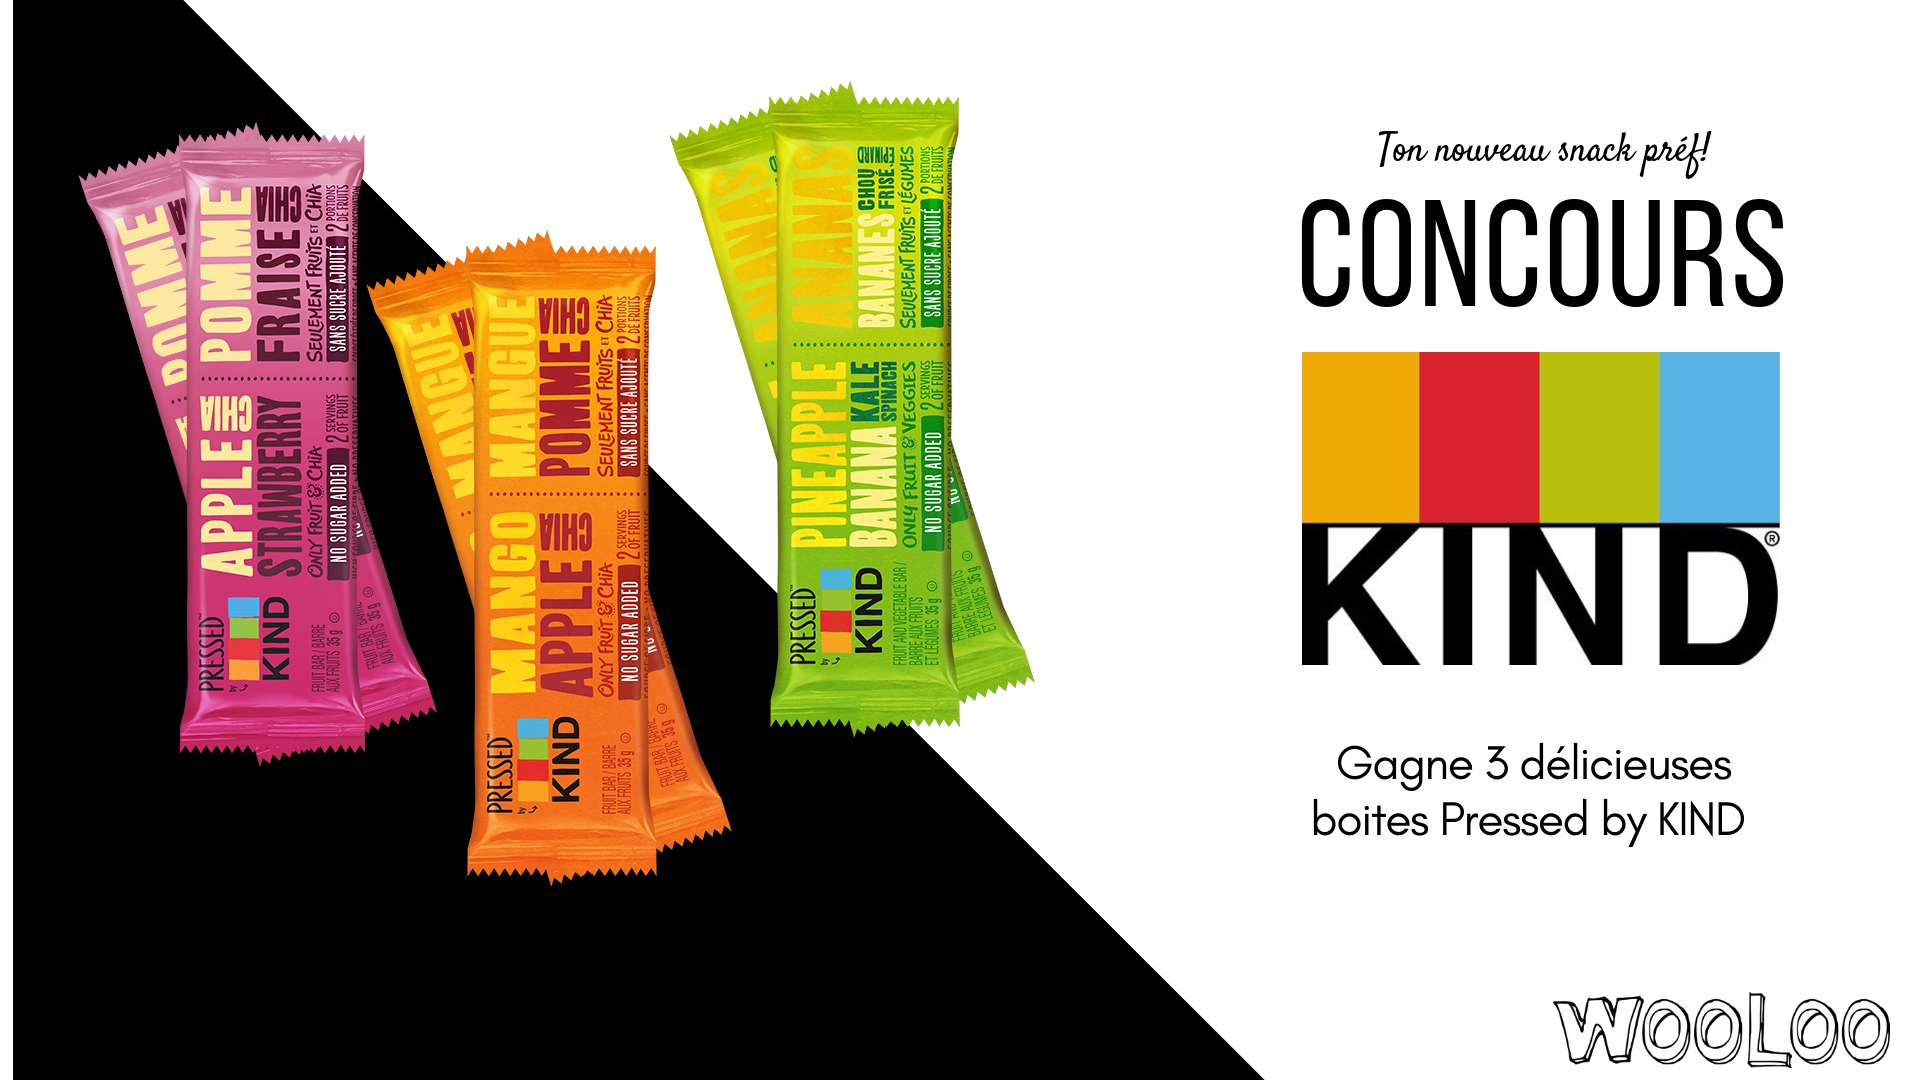 CONCOURS: Pressed by KIND